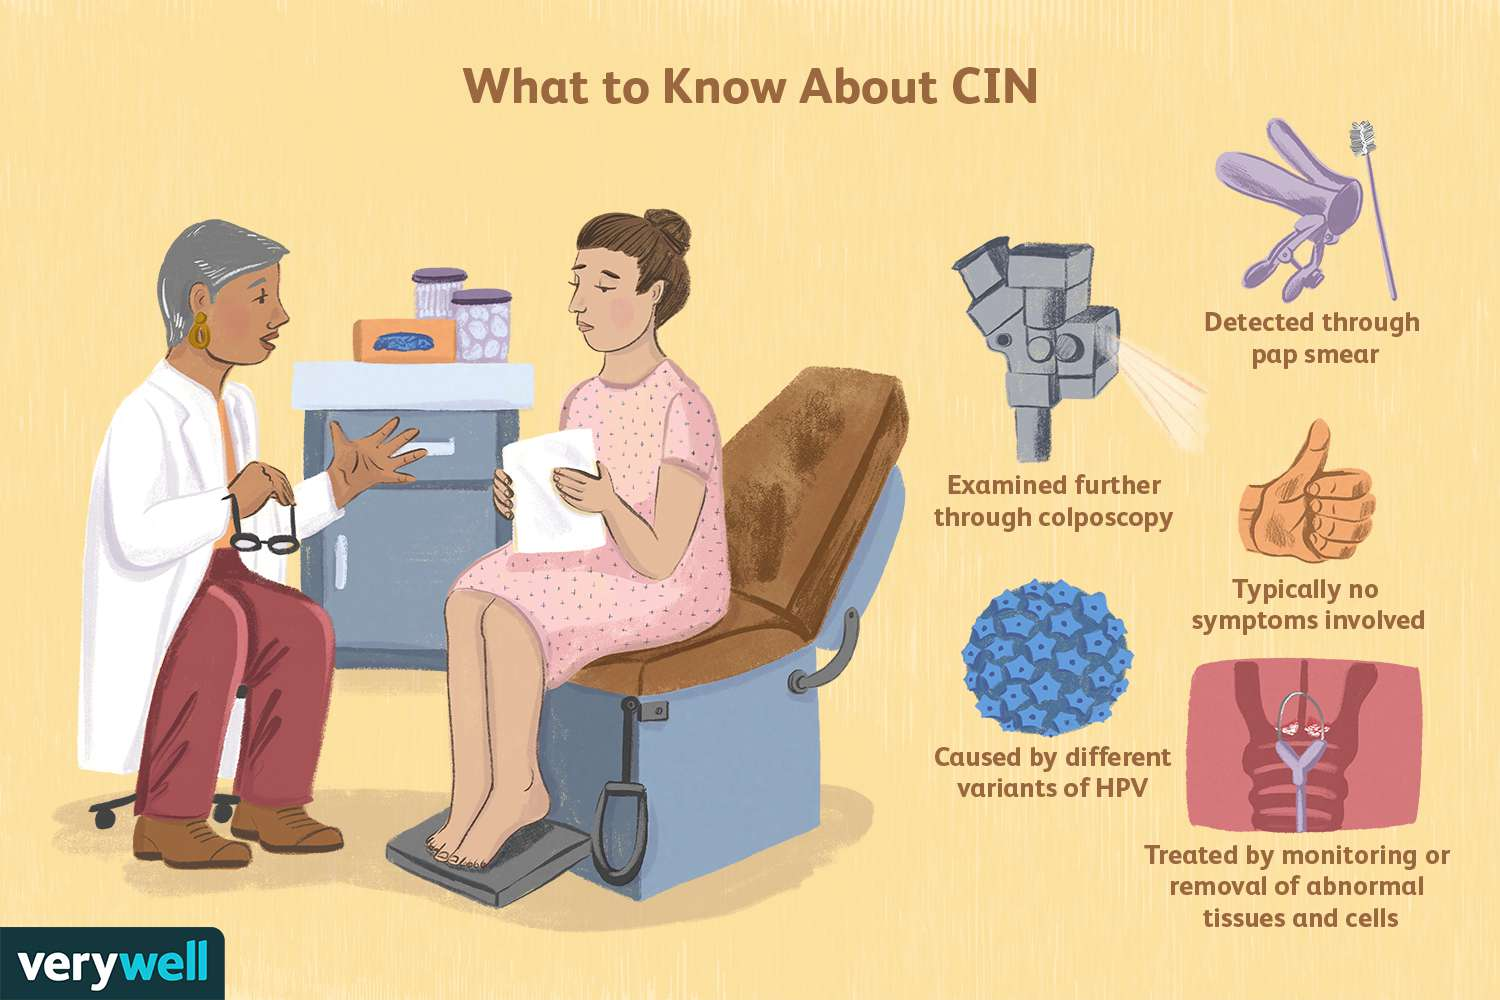 What to Know About CIN